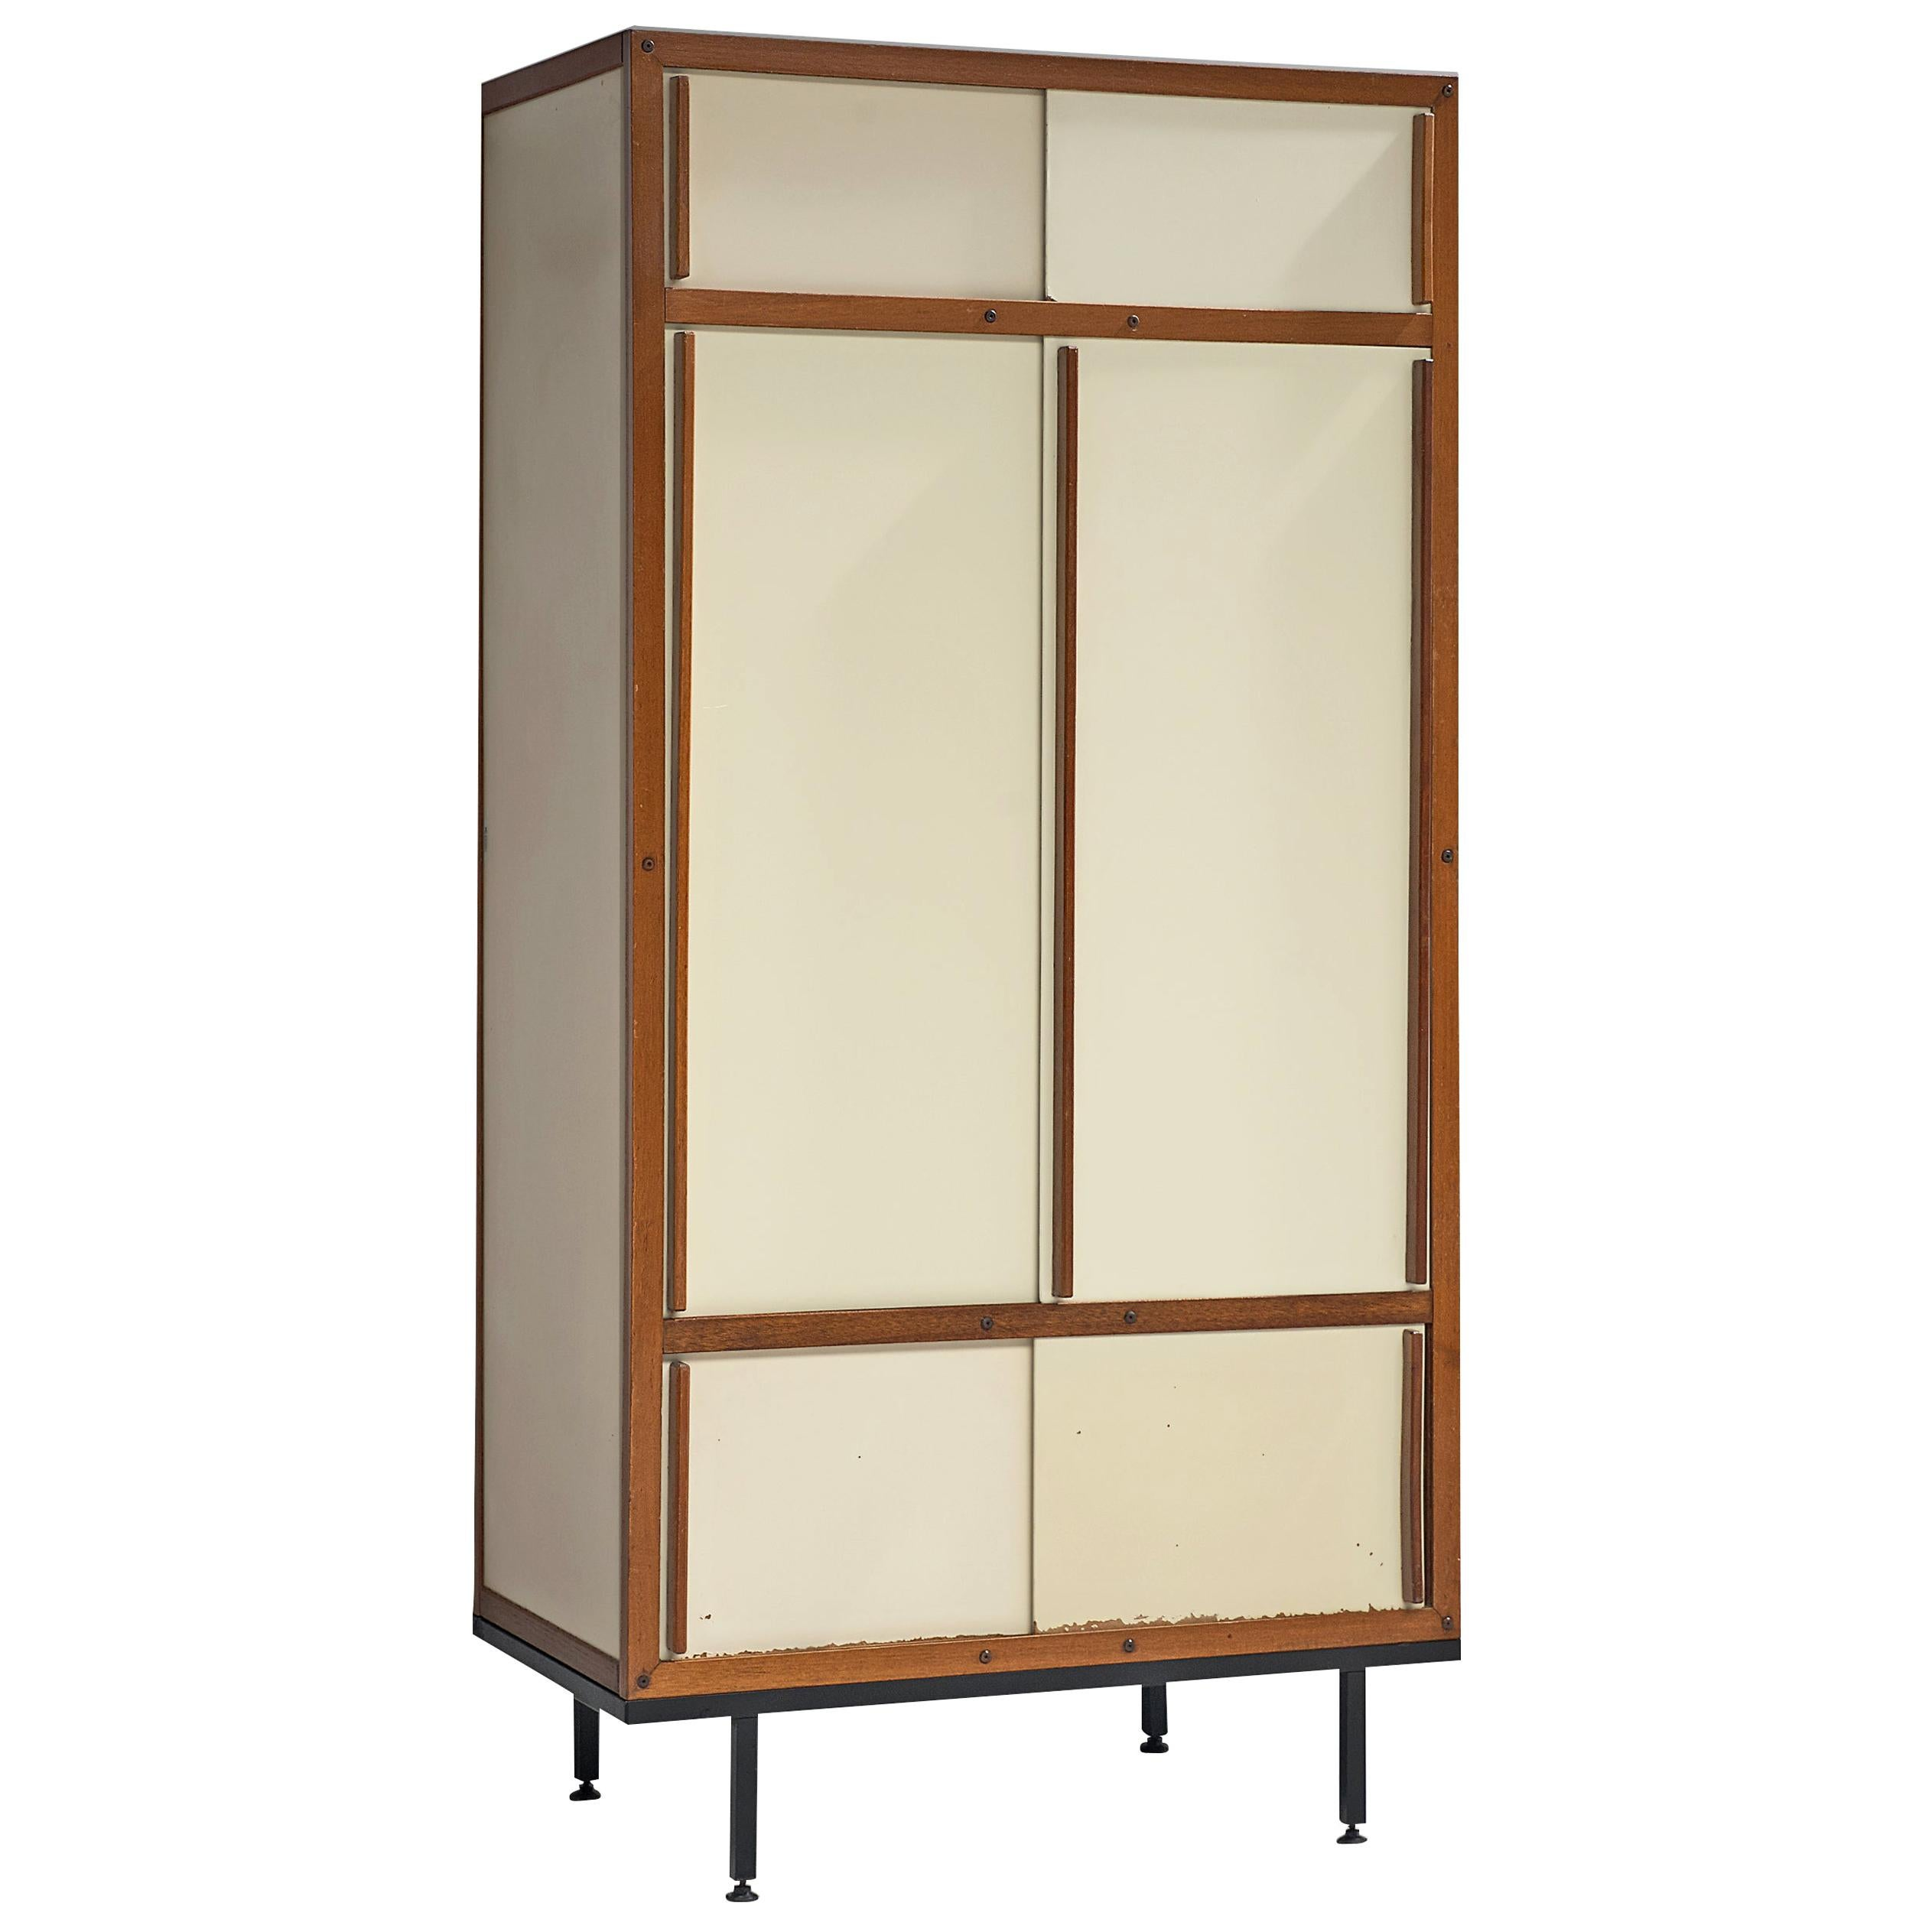 André Sornay Cabinet in Mahogany